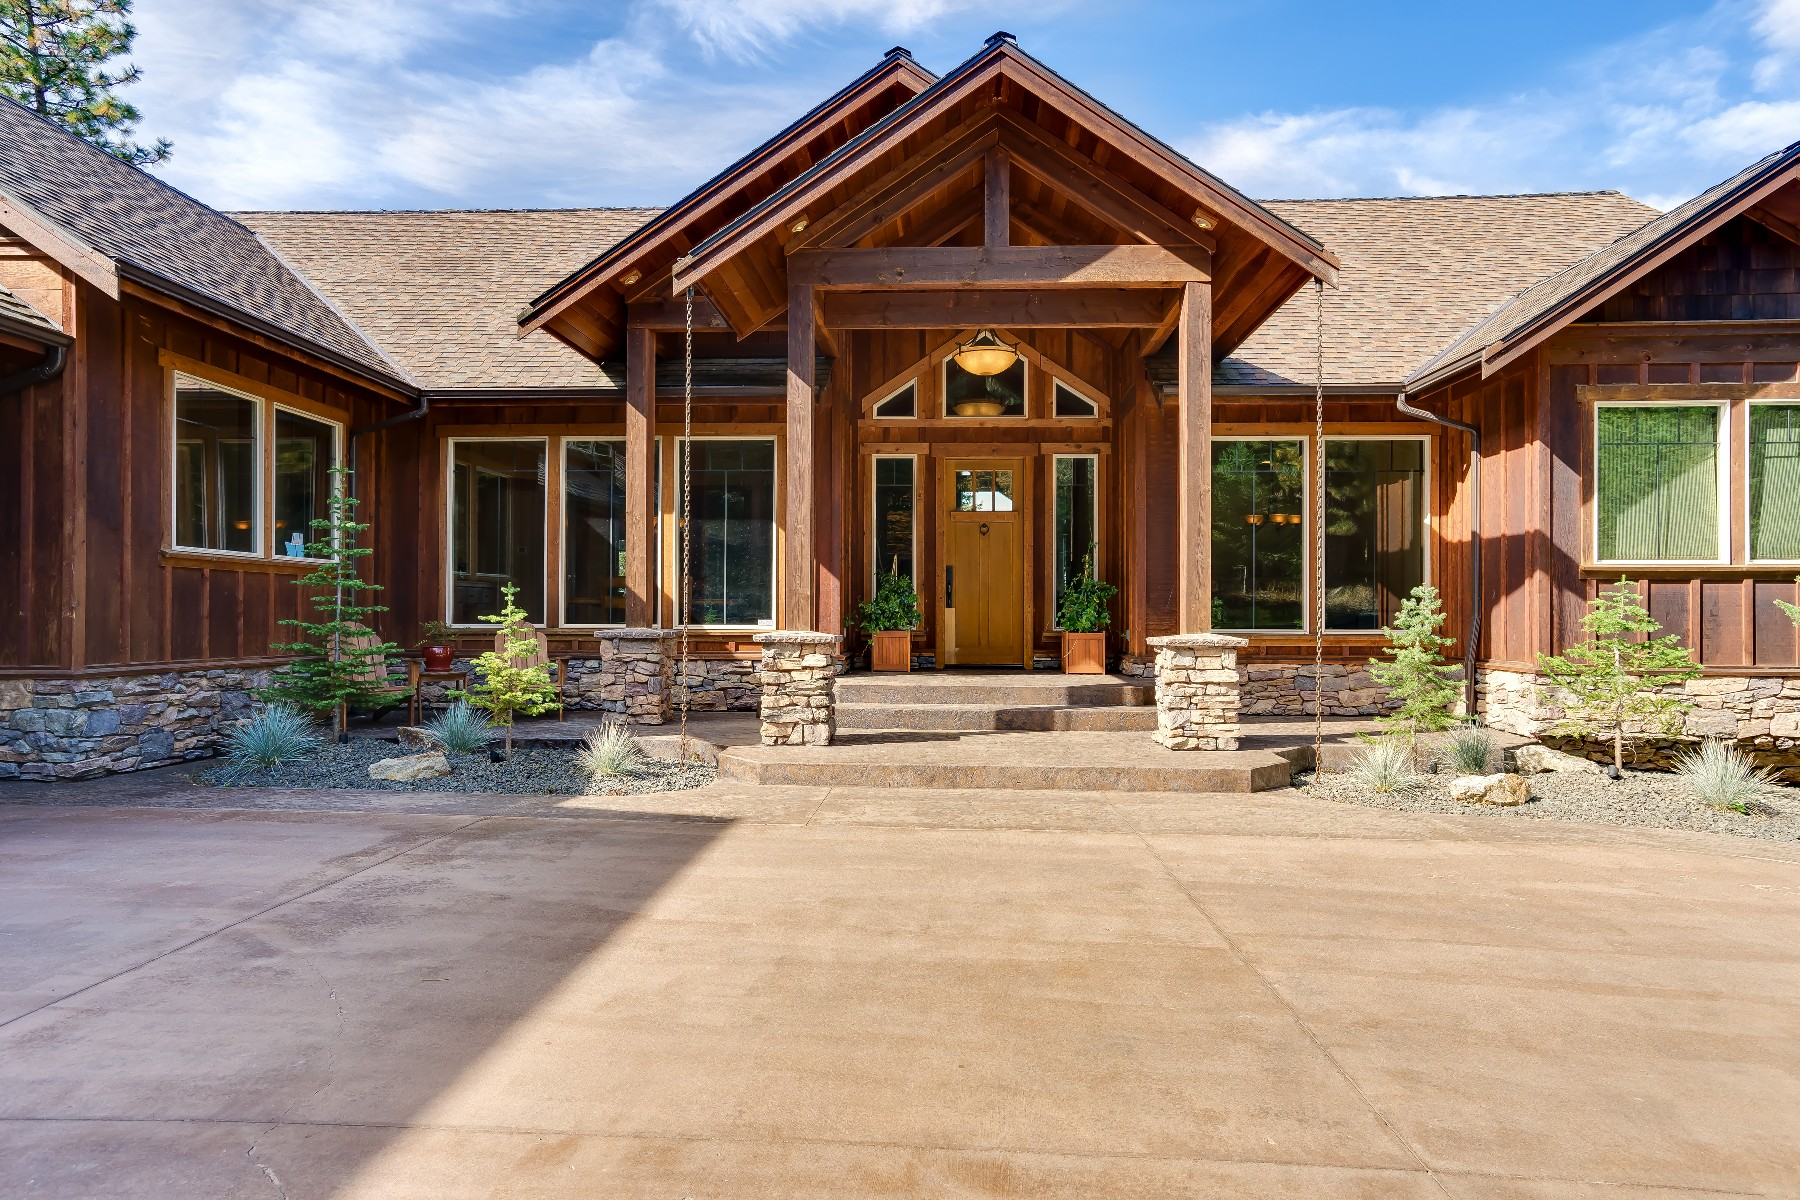 Single Family Homes for Active at Sundown Ridge Lodge Beauty on 10 acres 701 S Starlight Dr Coeur D Alene, Idaho 83814 United States